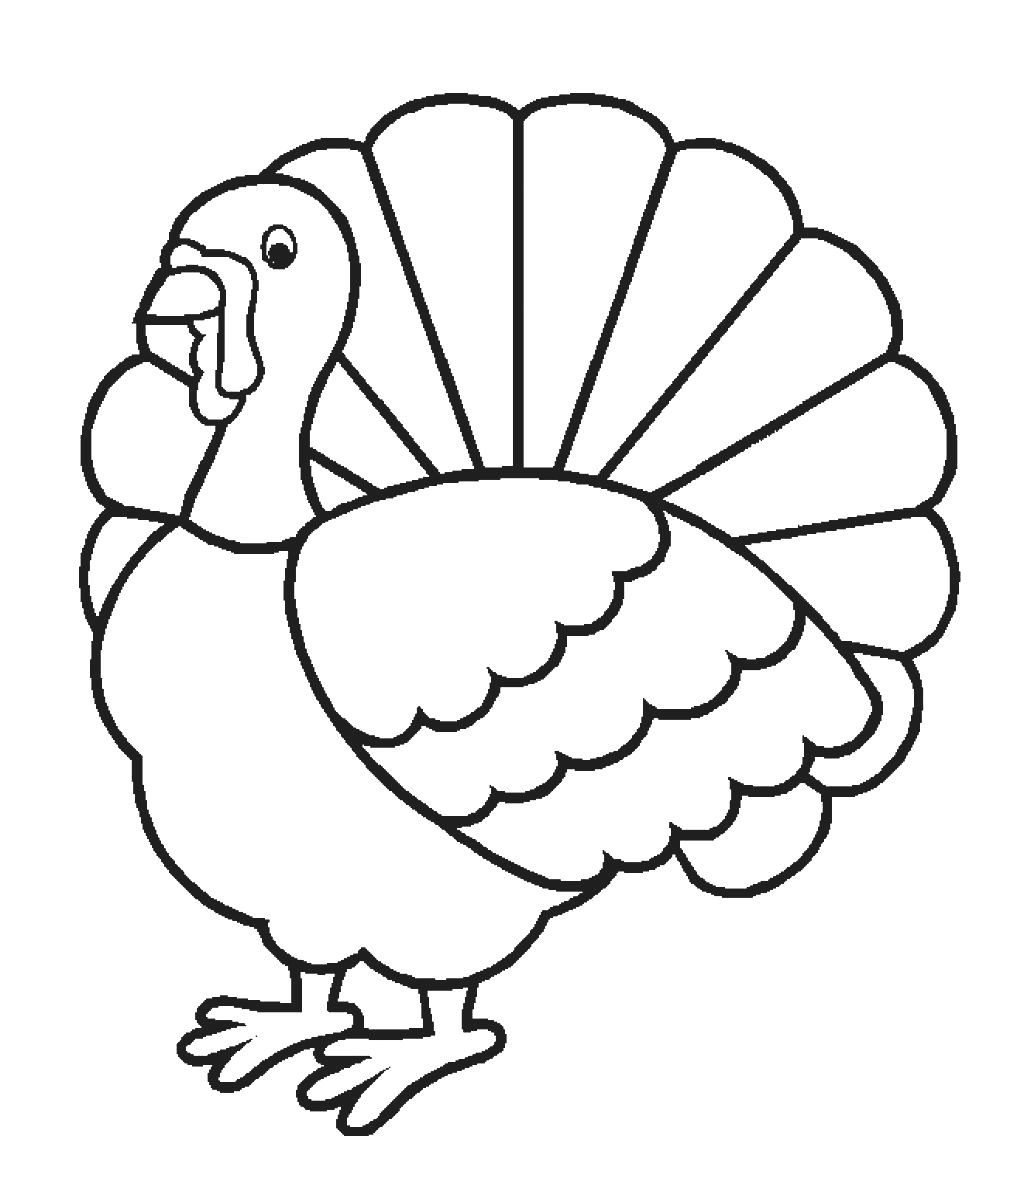 A Turkey For Thanksgiving Coloring Pages #2